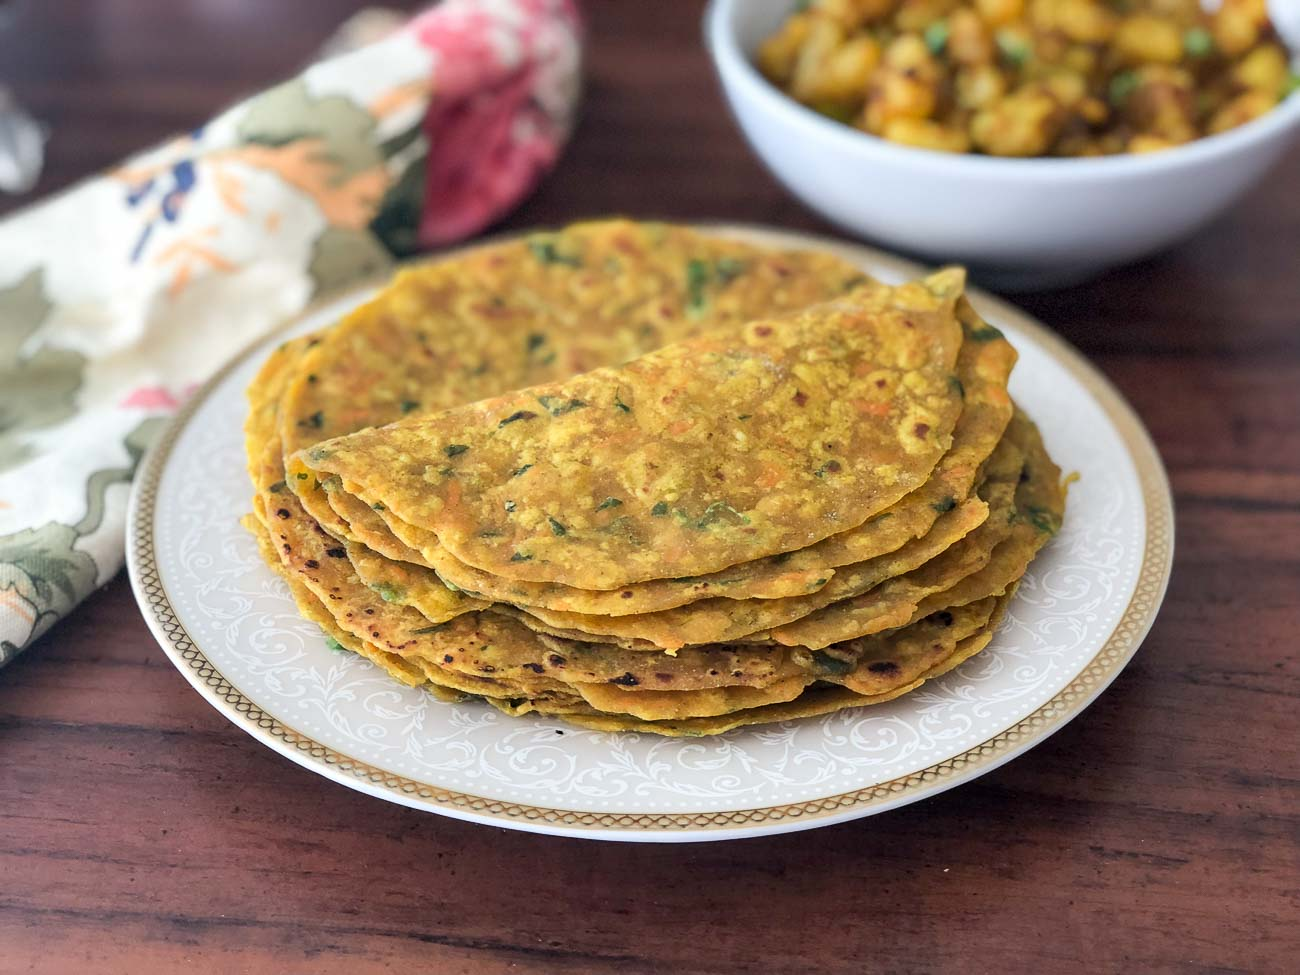 Carrot and Methi Thepla